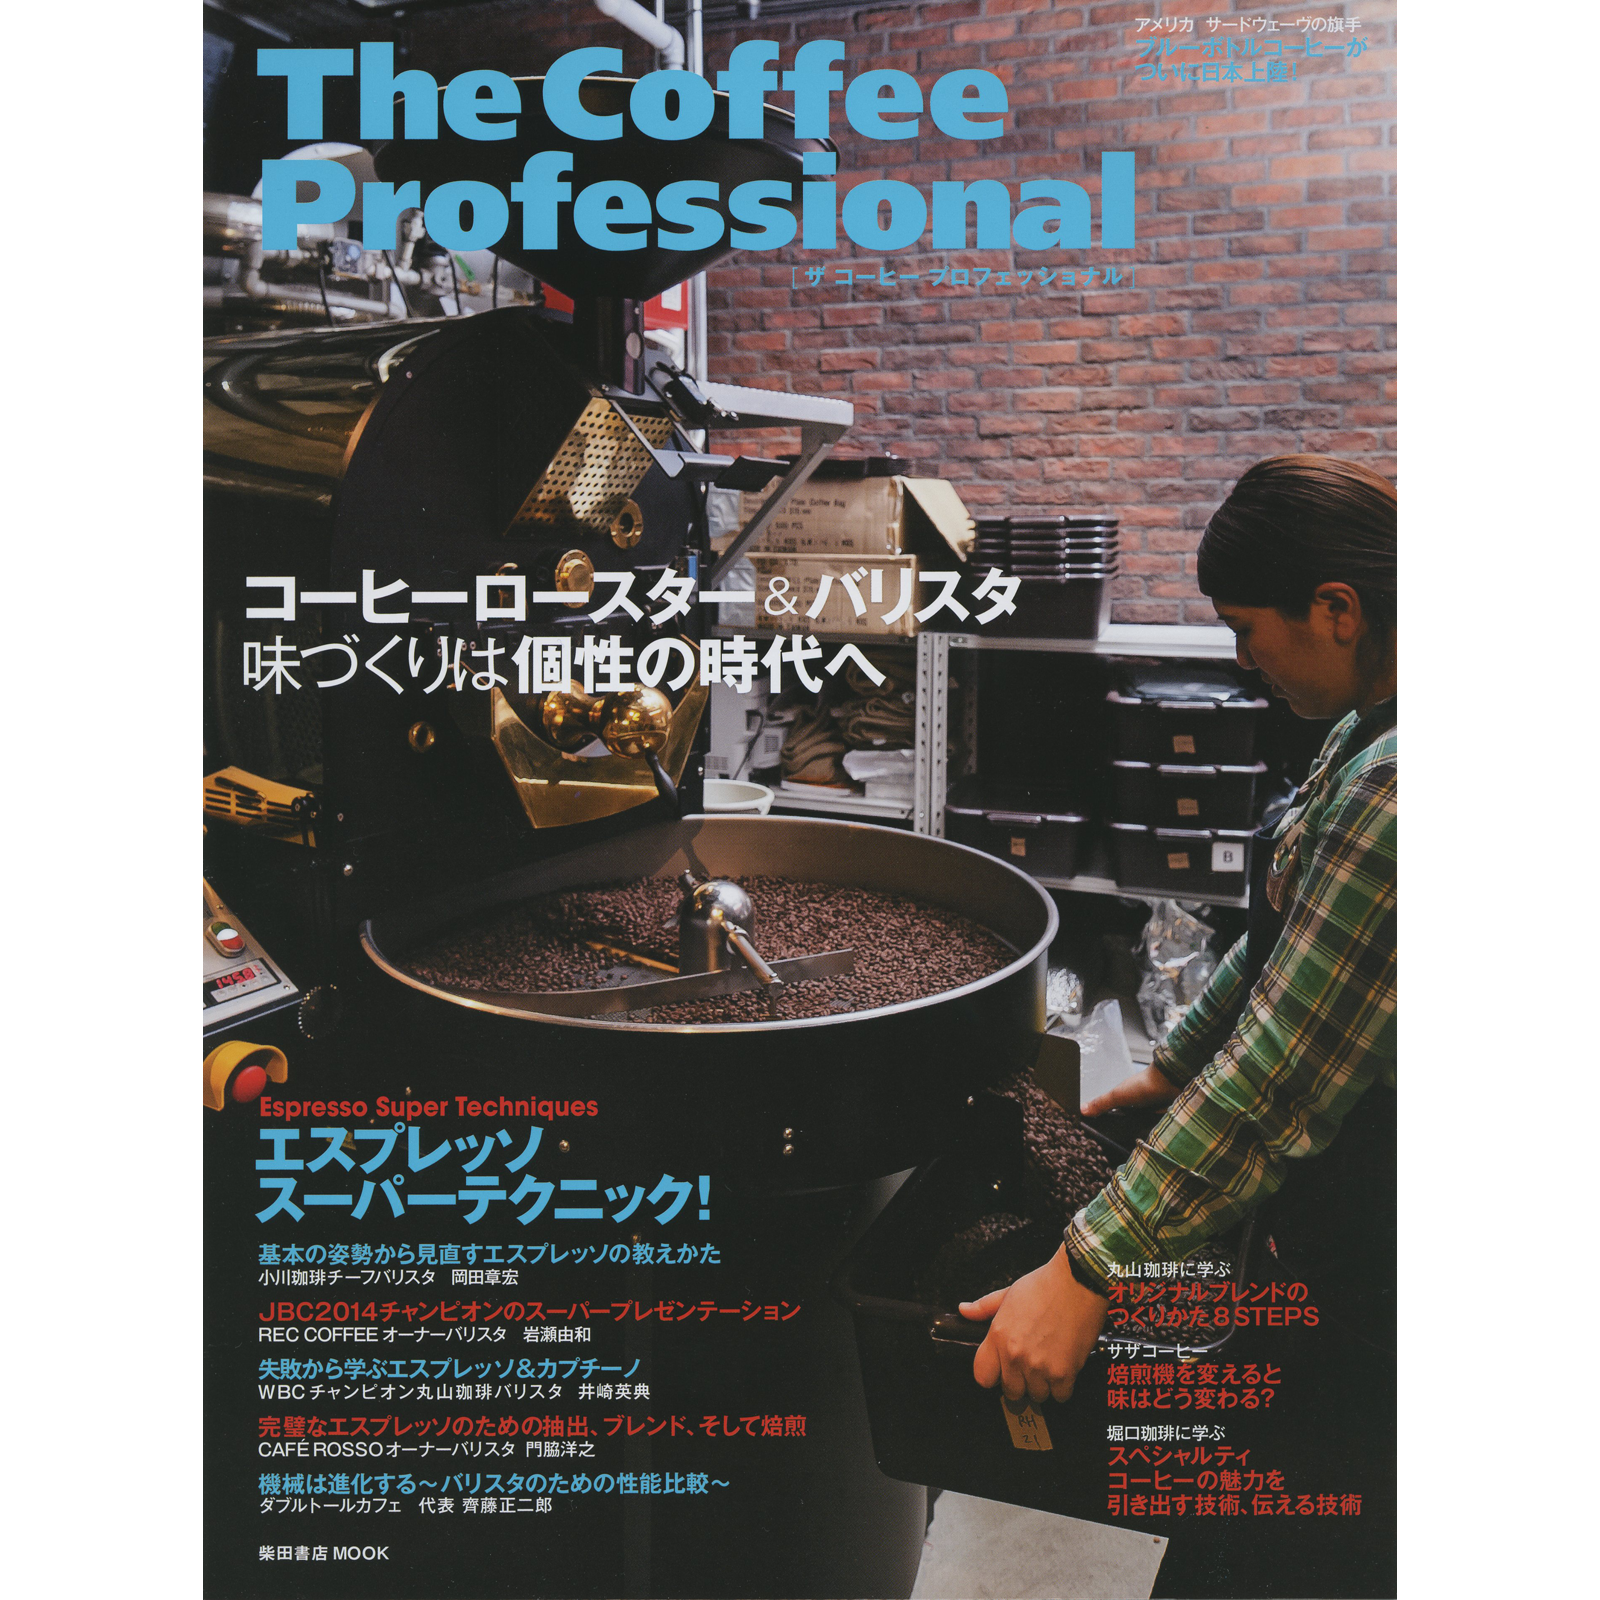 The Coffee Professional